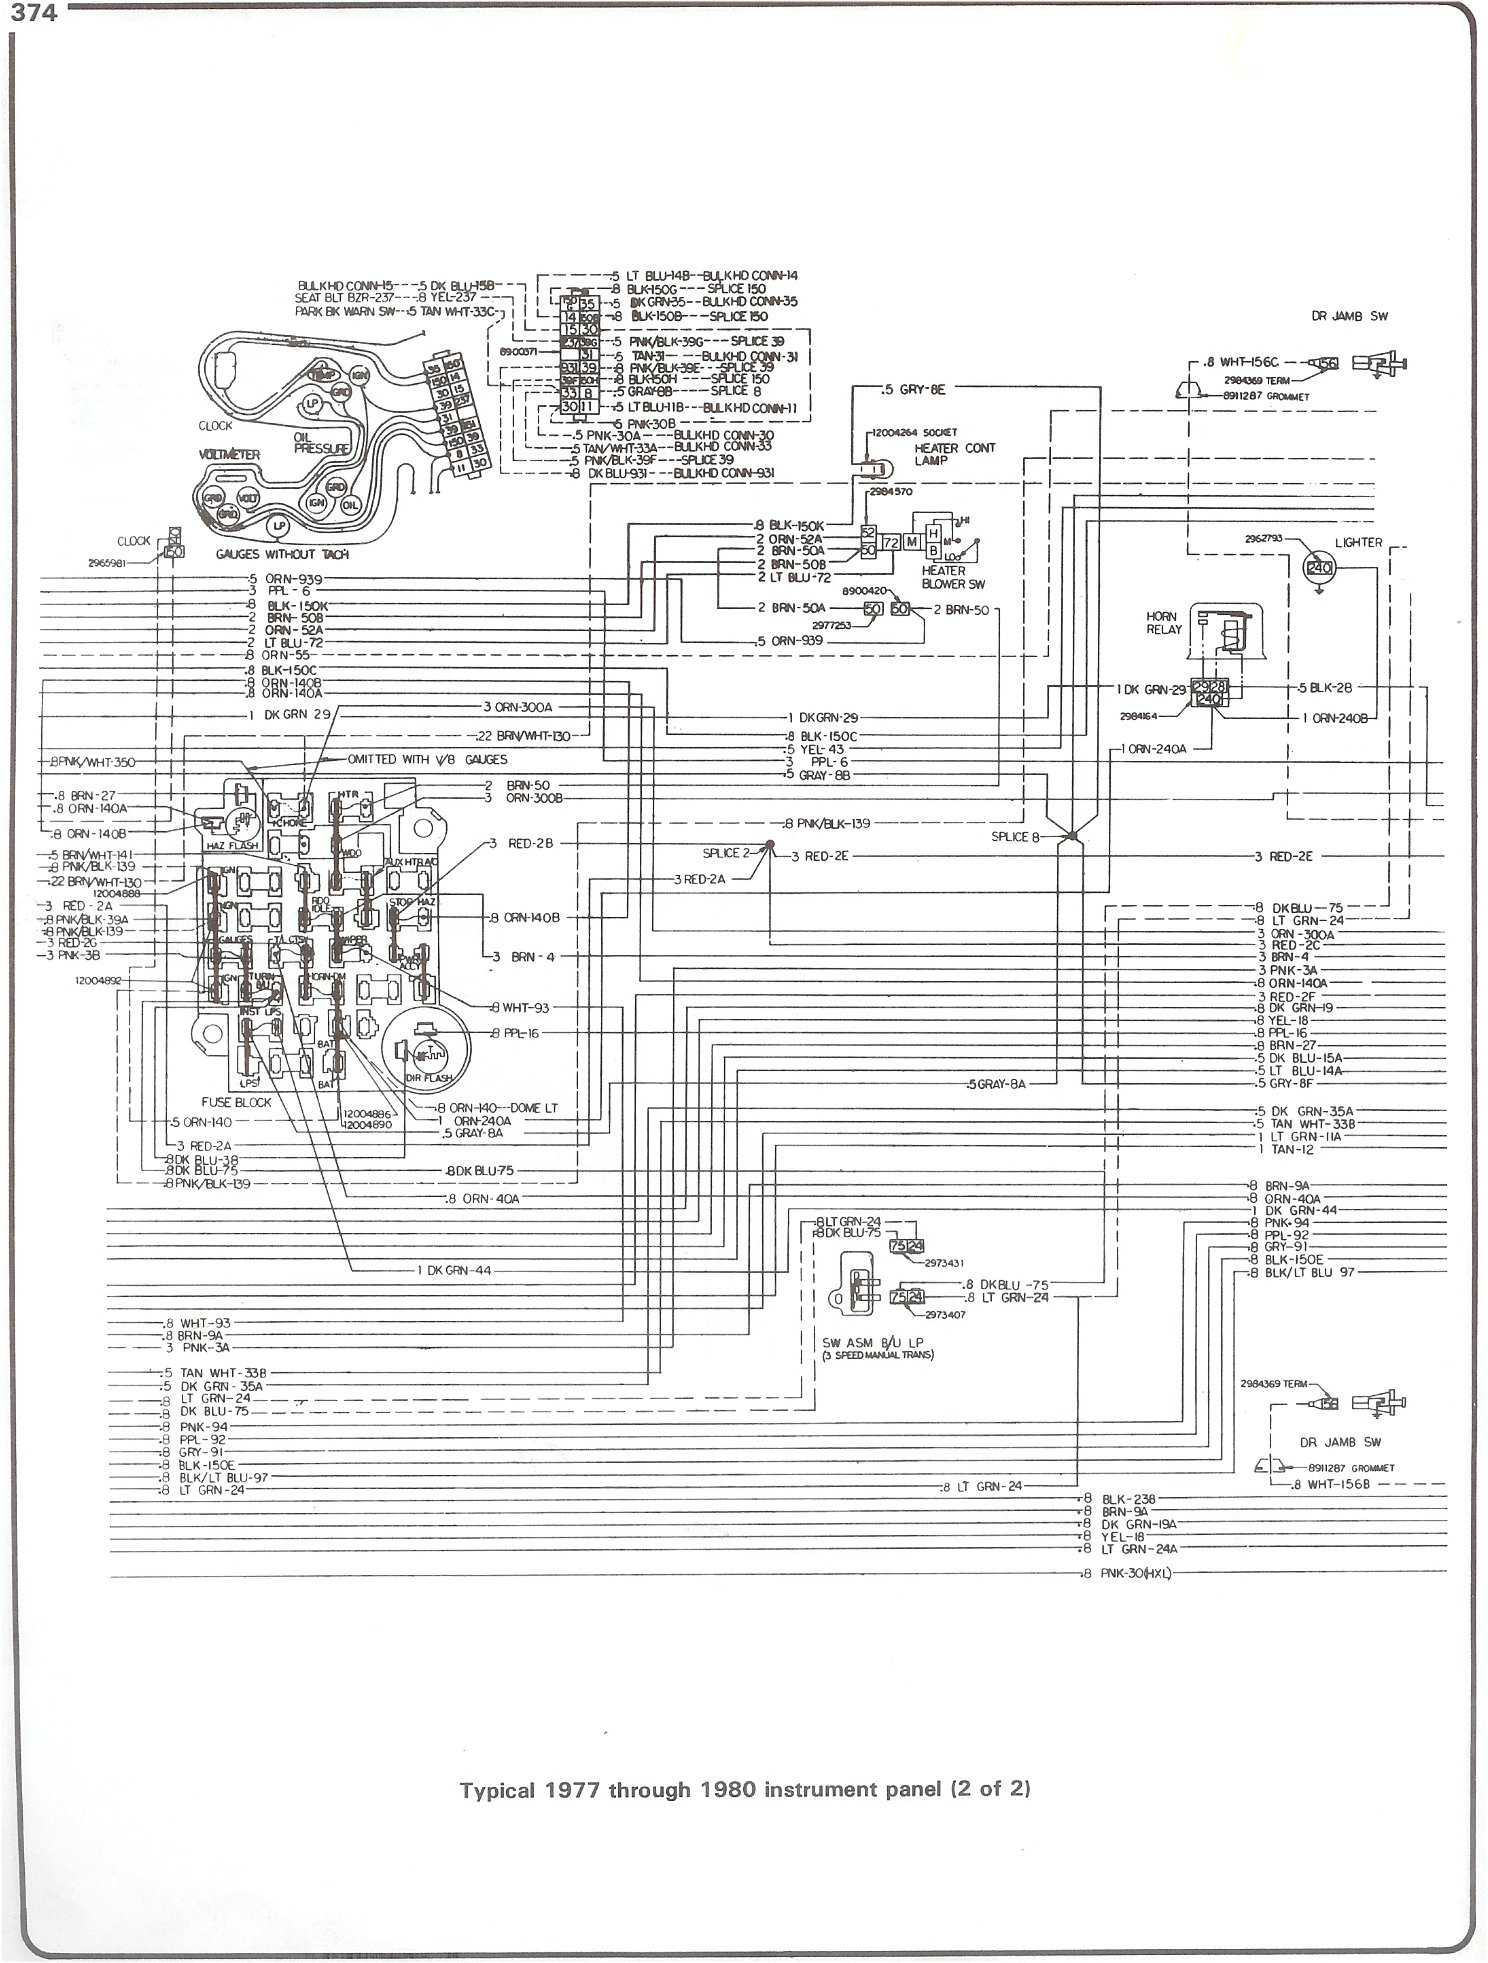 77 80_instrument_pg2 complete 73 87 wiring diagrams instrument wiring diagram at honlapkeszites.co